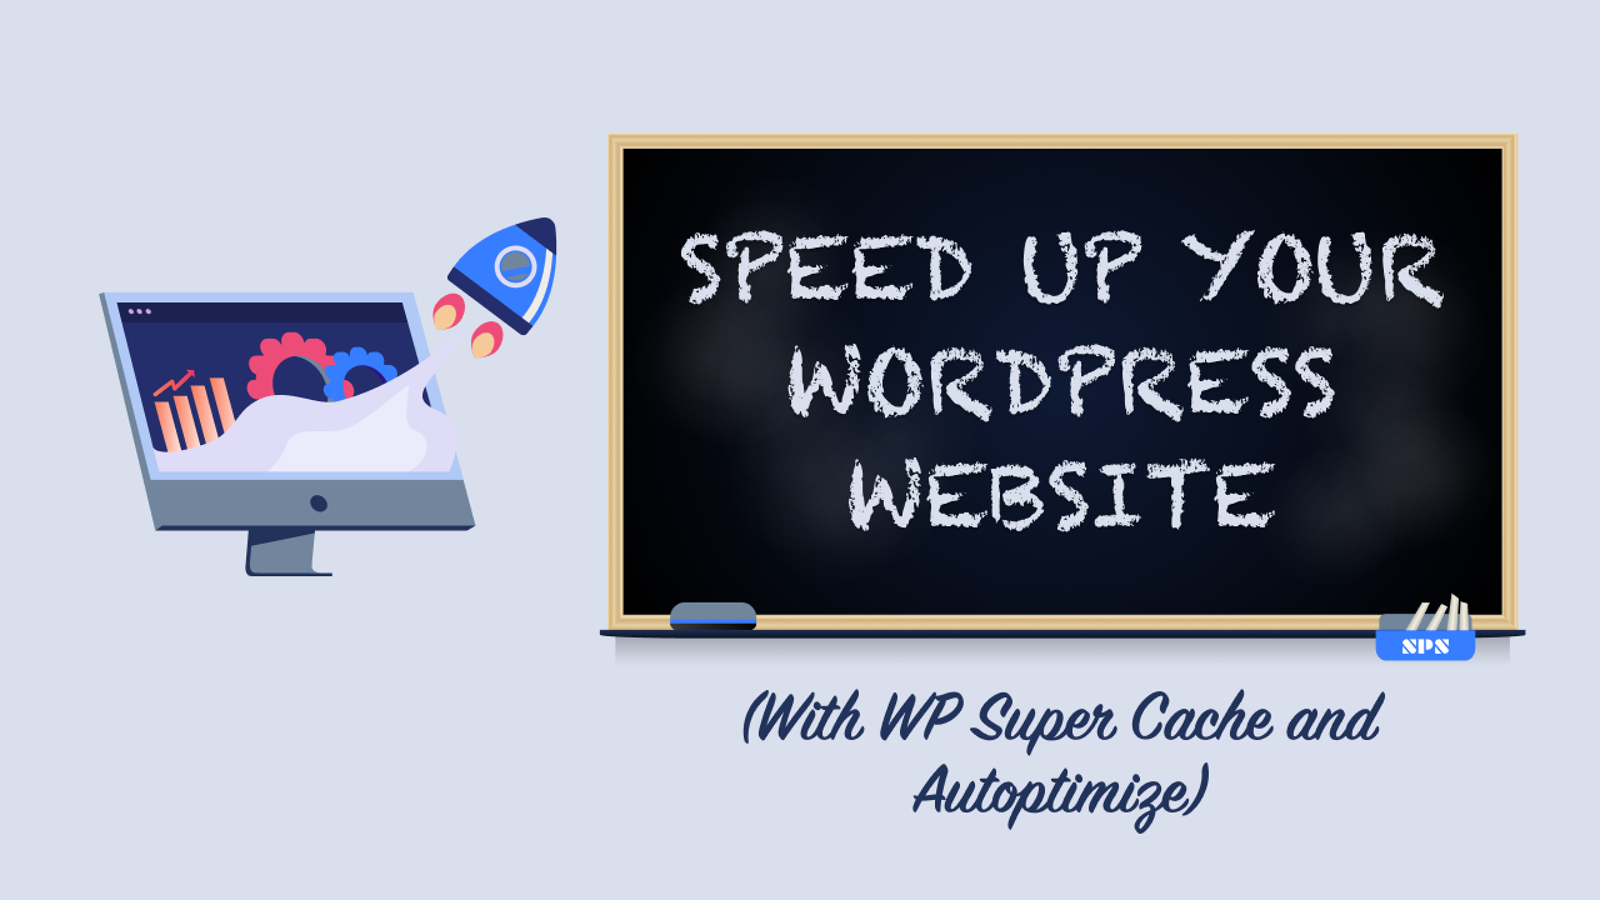 Speed Up Your WordPress Website With WP Super Cache and Autoptimize